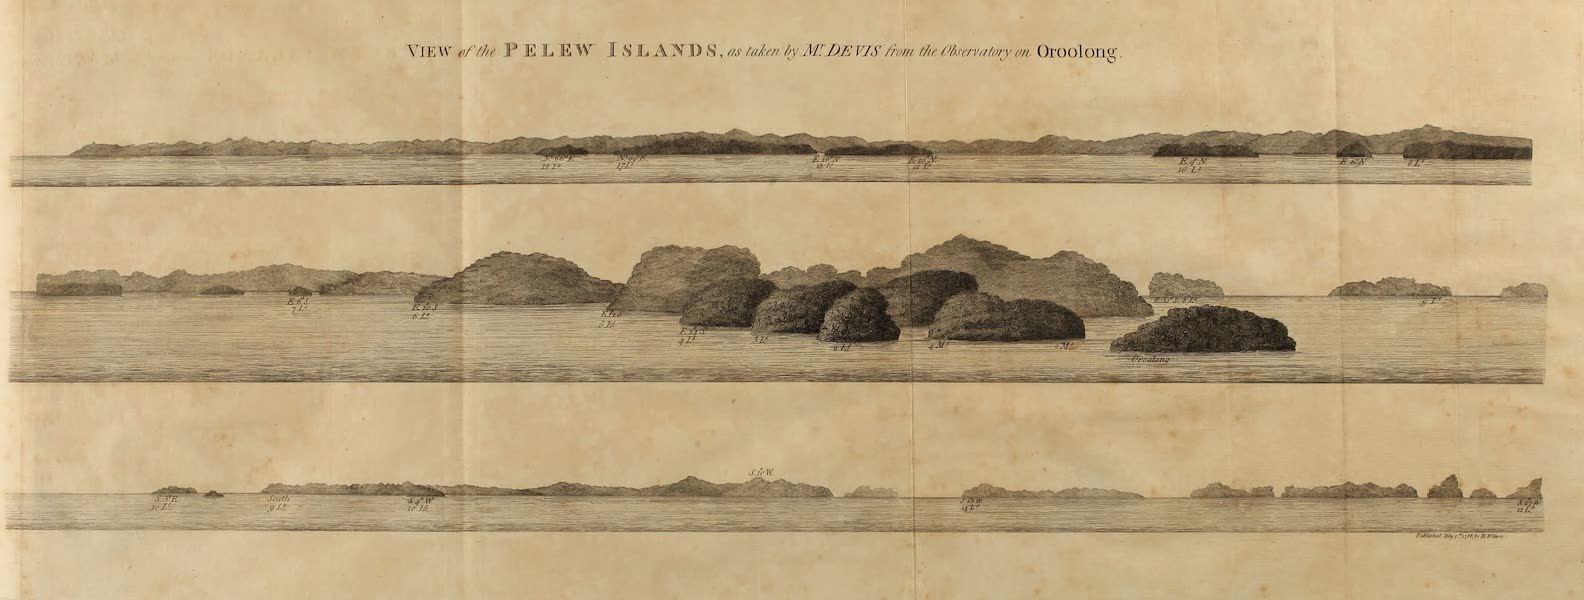 An Account of the Pelew Islands - View of the Pelew Islands as taken by Mr. Davis from the Observatory on Oroolong (1788)